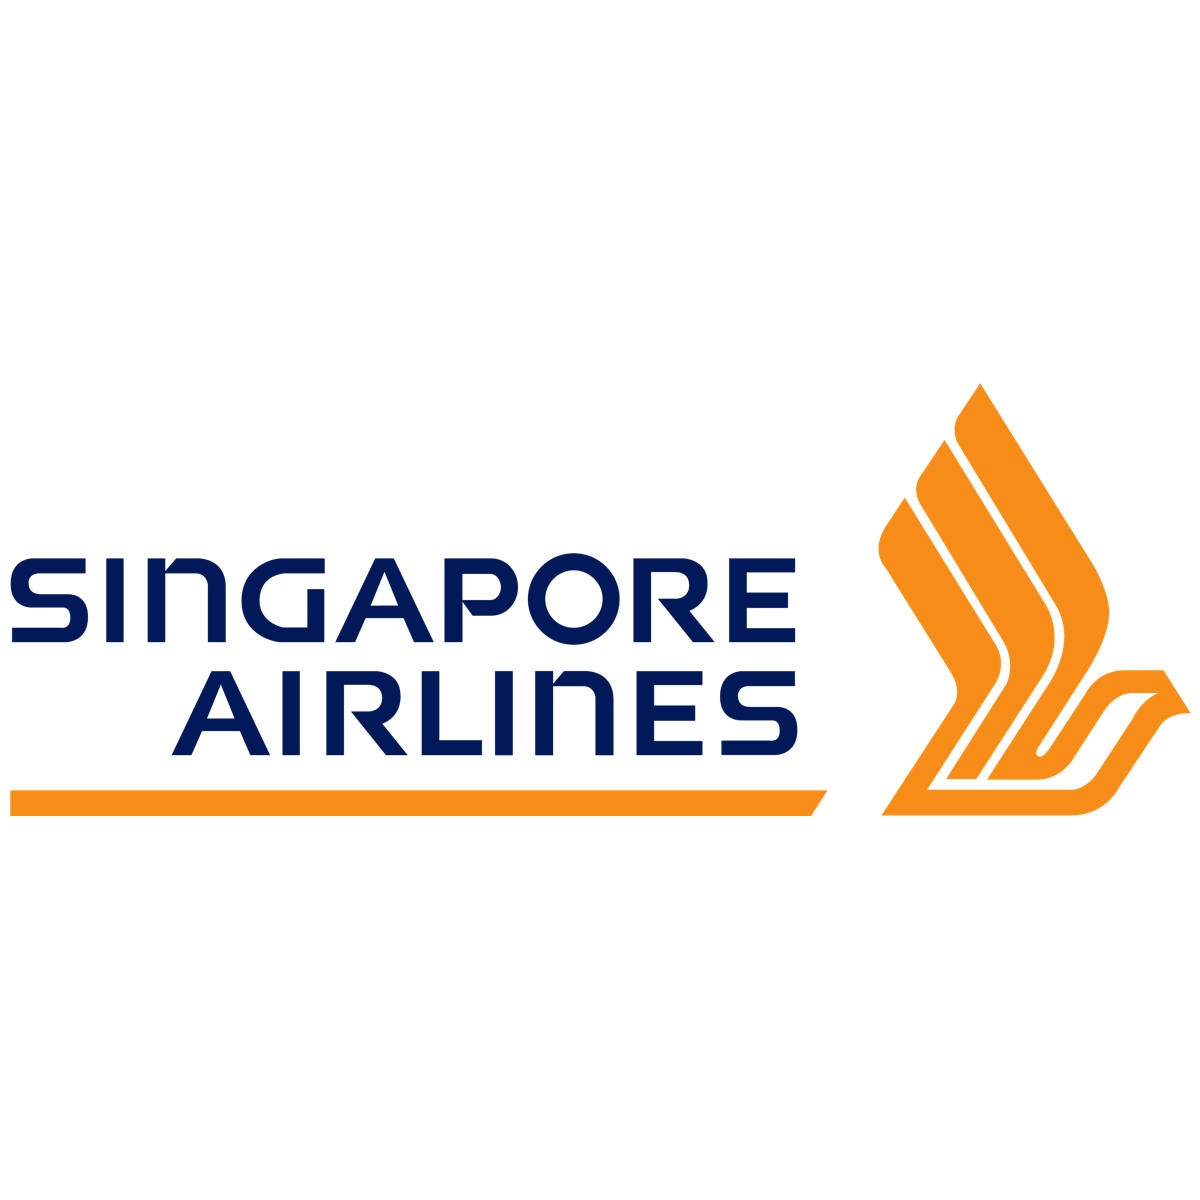 Singapore Airlines - CIMB Research 2017-07-28: 1QFY18 Cargo Recovery Drives Yoy Improvement